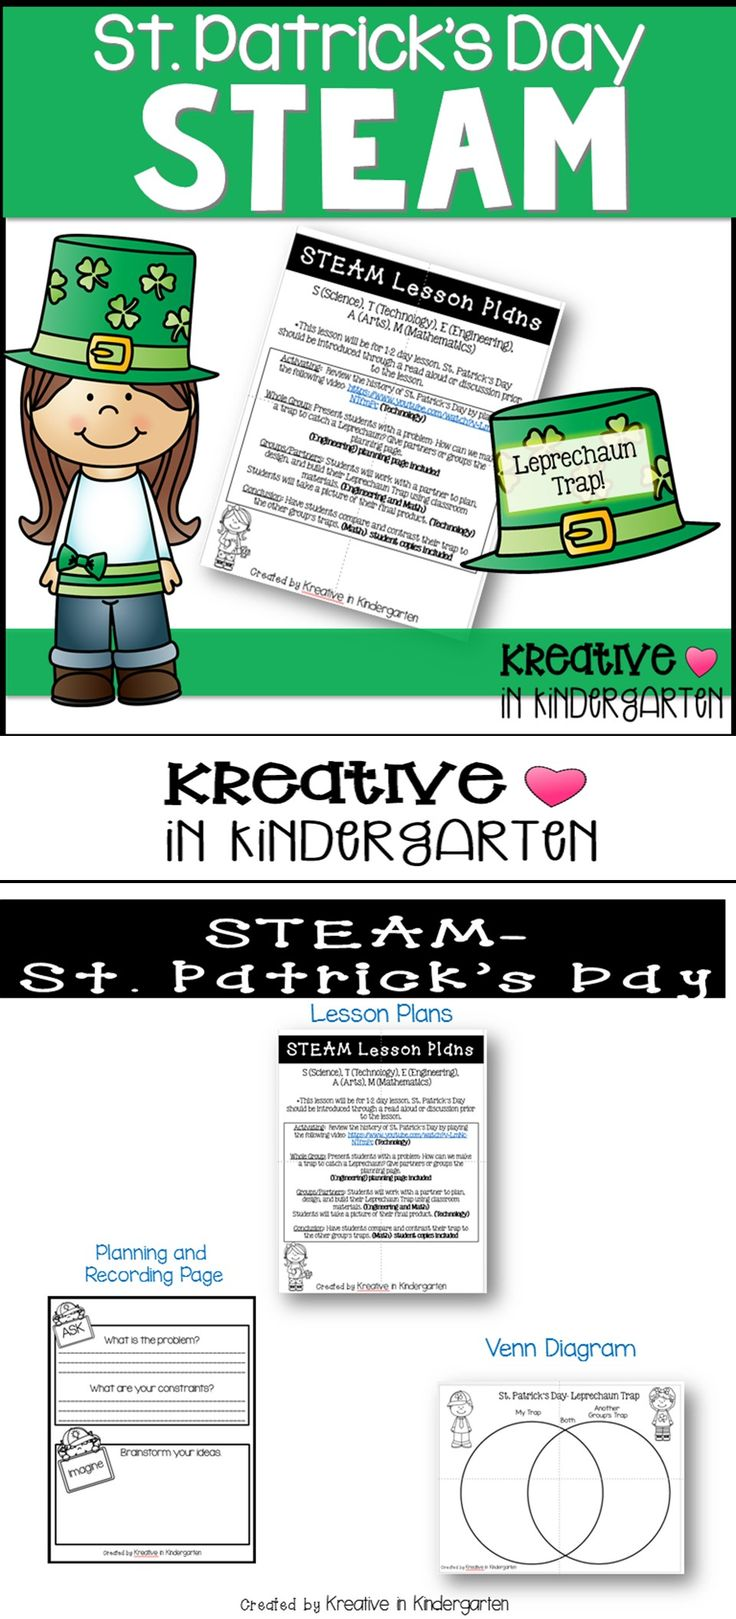 St. Patrick's Day Leprechaun Trap- STEAM   Are you trying to incorporate STEAM (STEM) into your classroom that is perfect for little learners? Do you need a quick, easy, minimal prep way to do it?   ★ Teacher directions with lesson plans!  ★ Printable recording sheet for planning and recording the challenge ★ Venn Diagram ★ Materials List ★ Reflection Questions ★ Incorporates- Engineering, Arts, Technology and Math